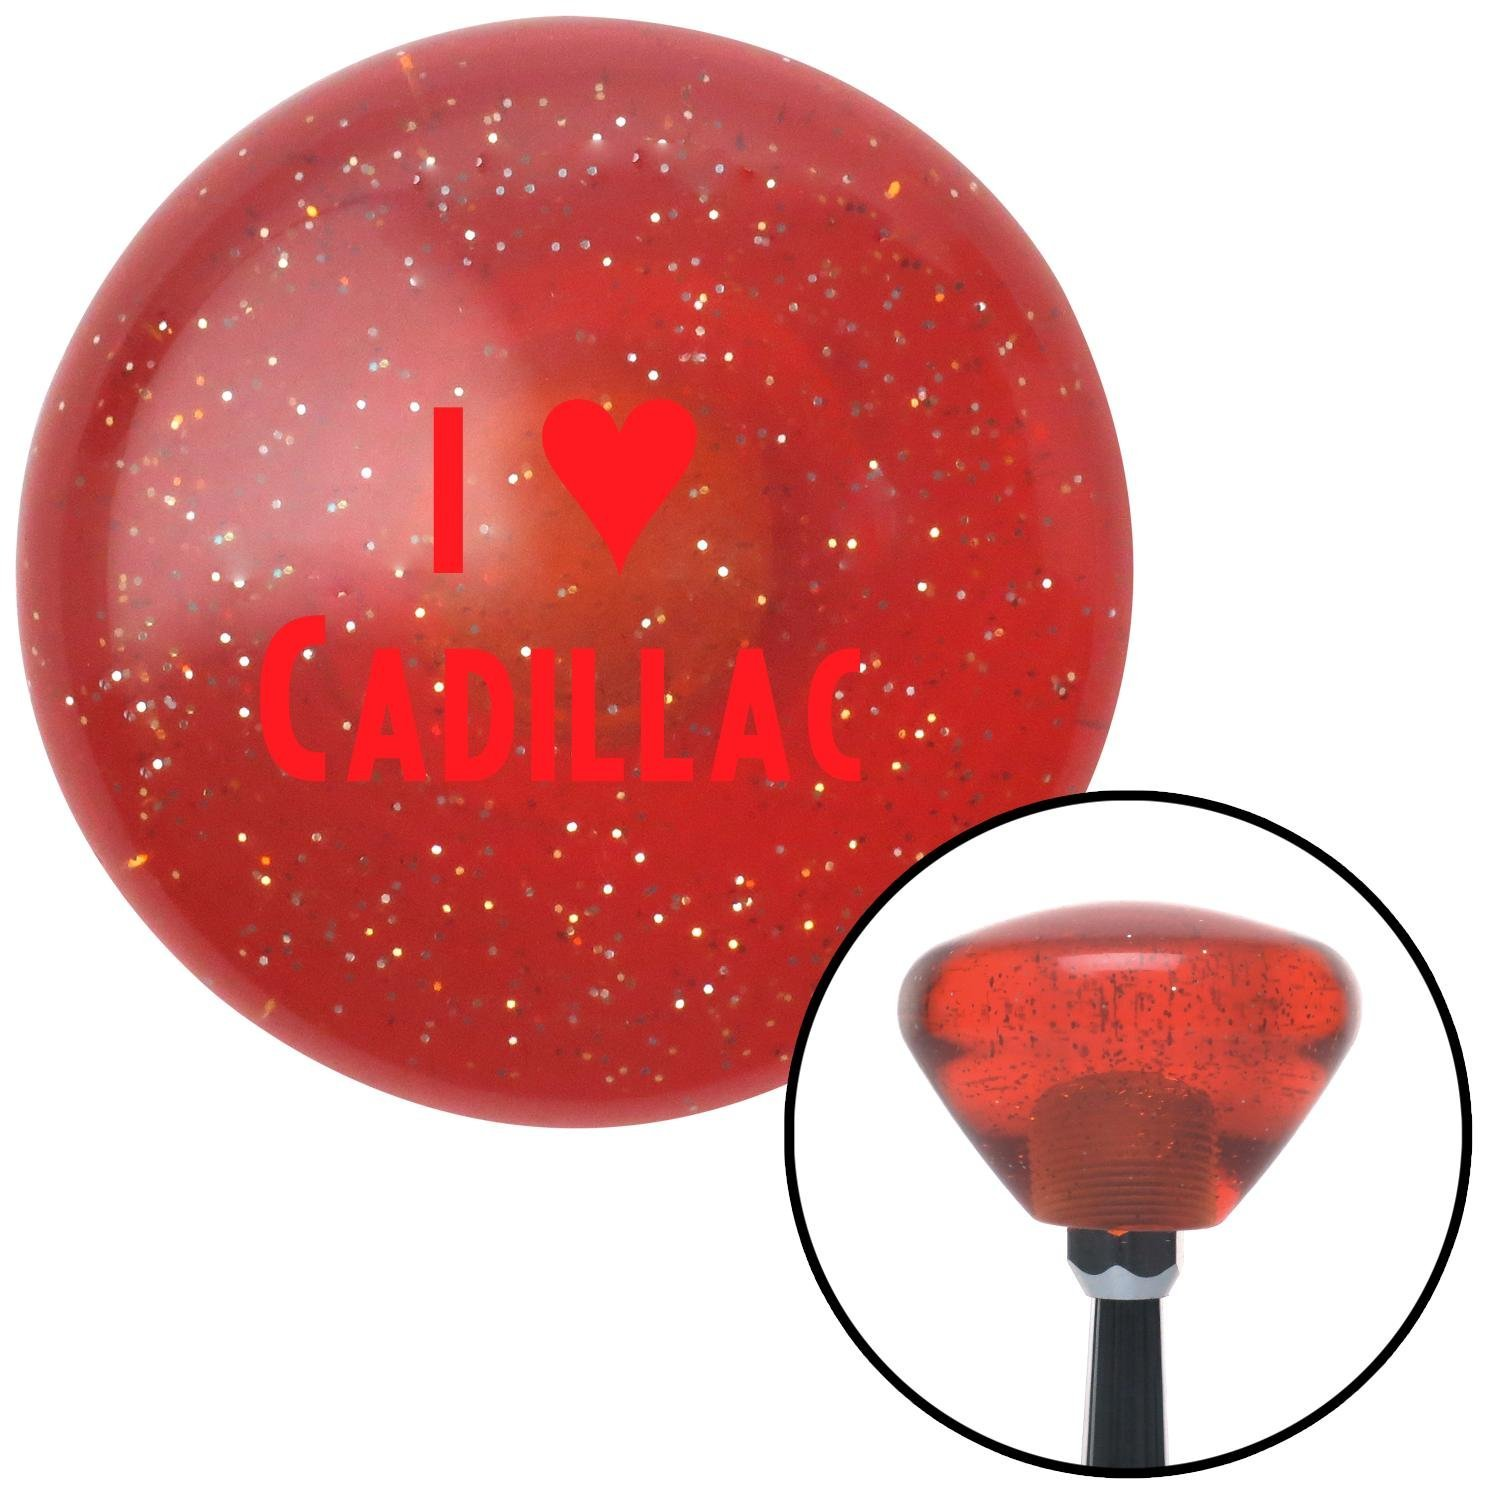 Red I 3 Cadillac American Shifter 177750 Orange Retro Metal Flake Shift Knob with M16 x 1.5 Insert